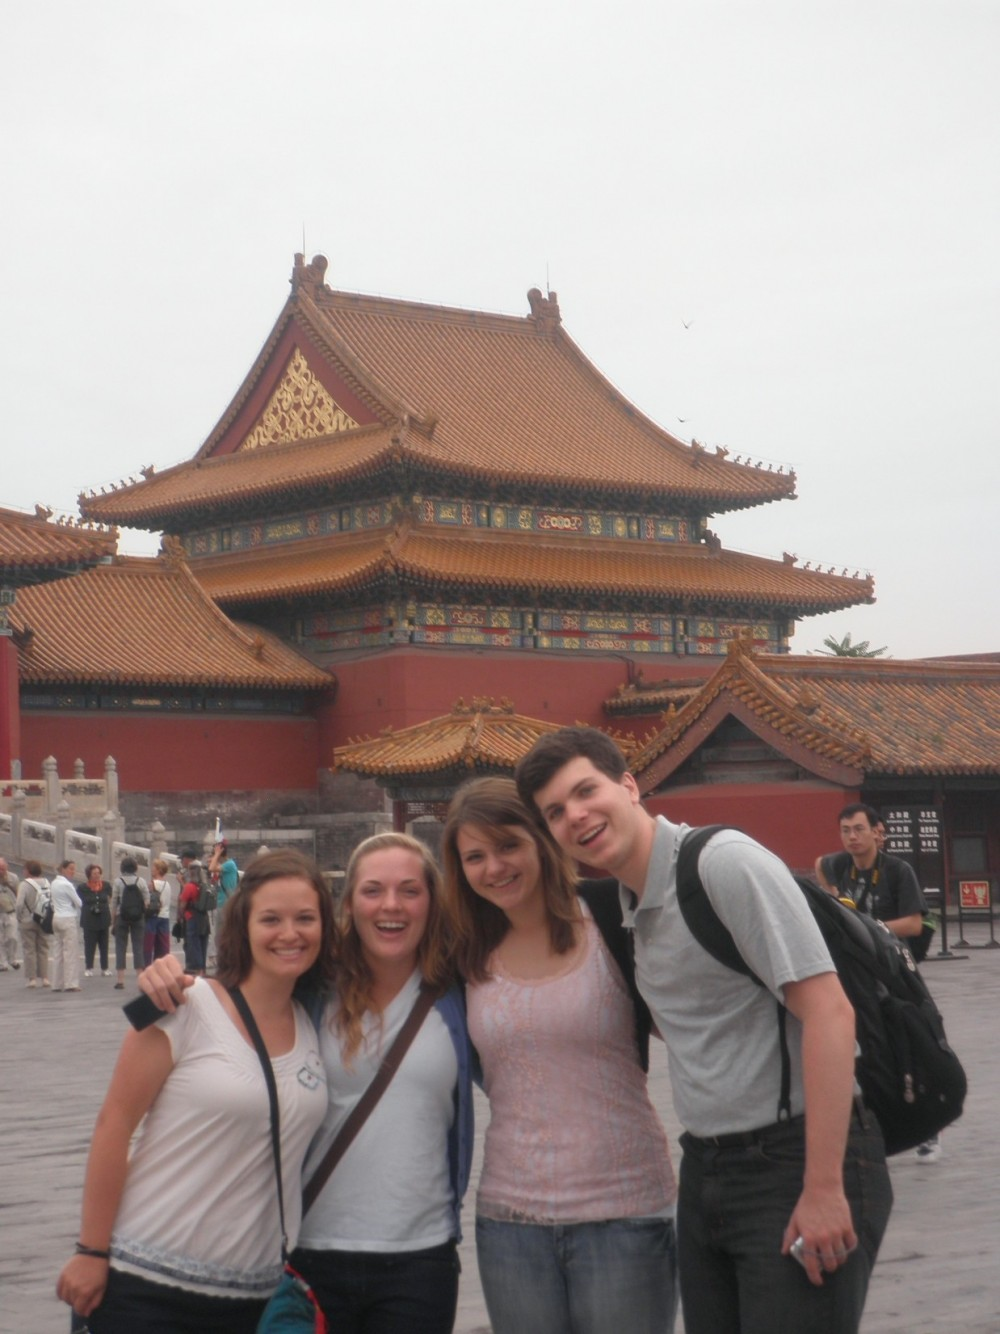 Andrea Loer, Bonnie Maddox, Katie Sokolyk and Ben Bracher pose for a photo in Shanghai.